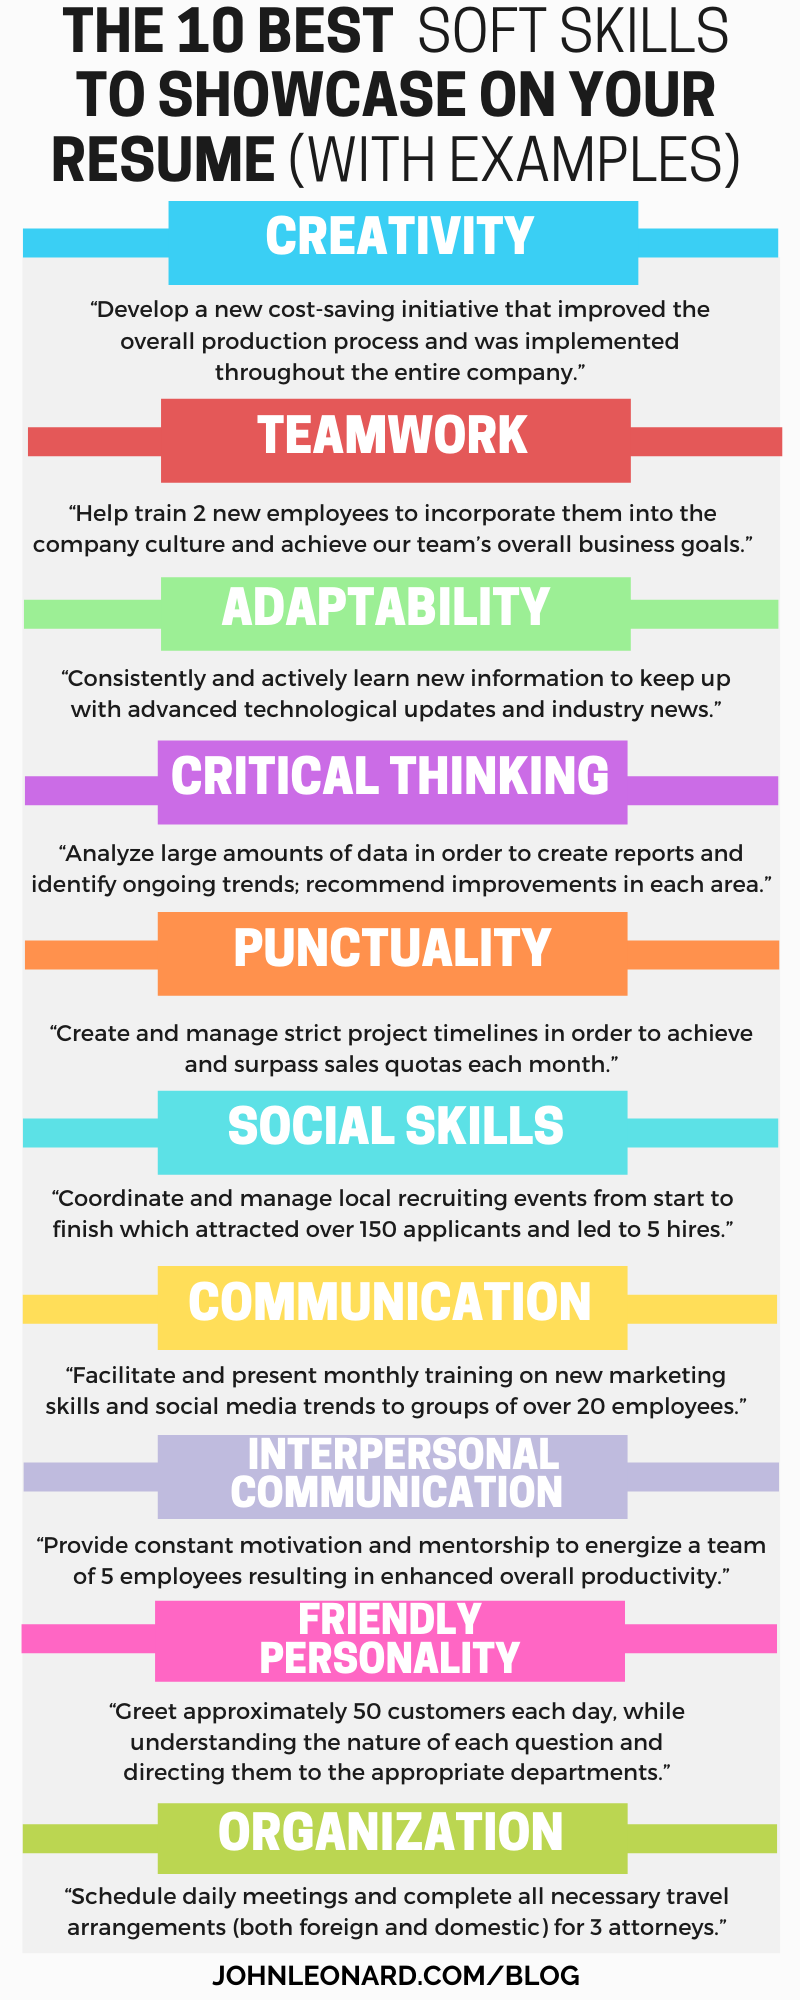 The 10 Best Soft Skills To Showcase On Your Resume With Examples